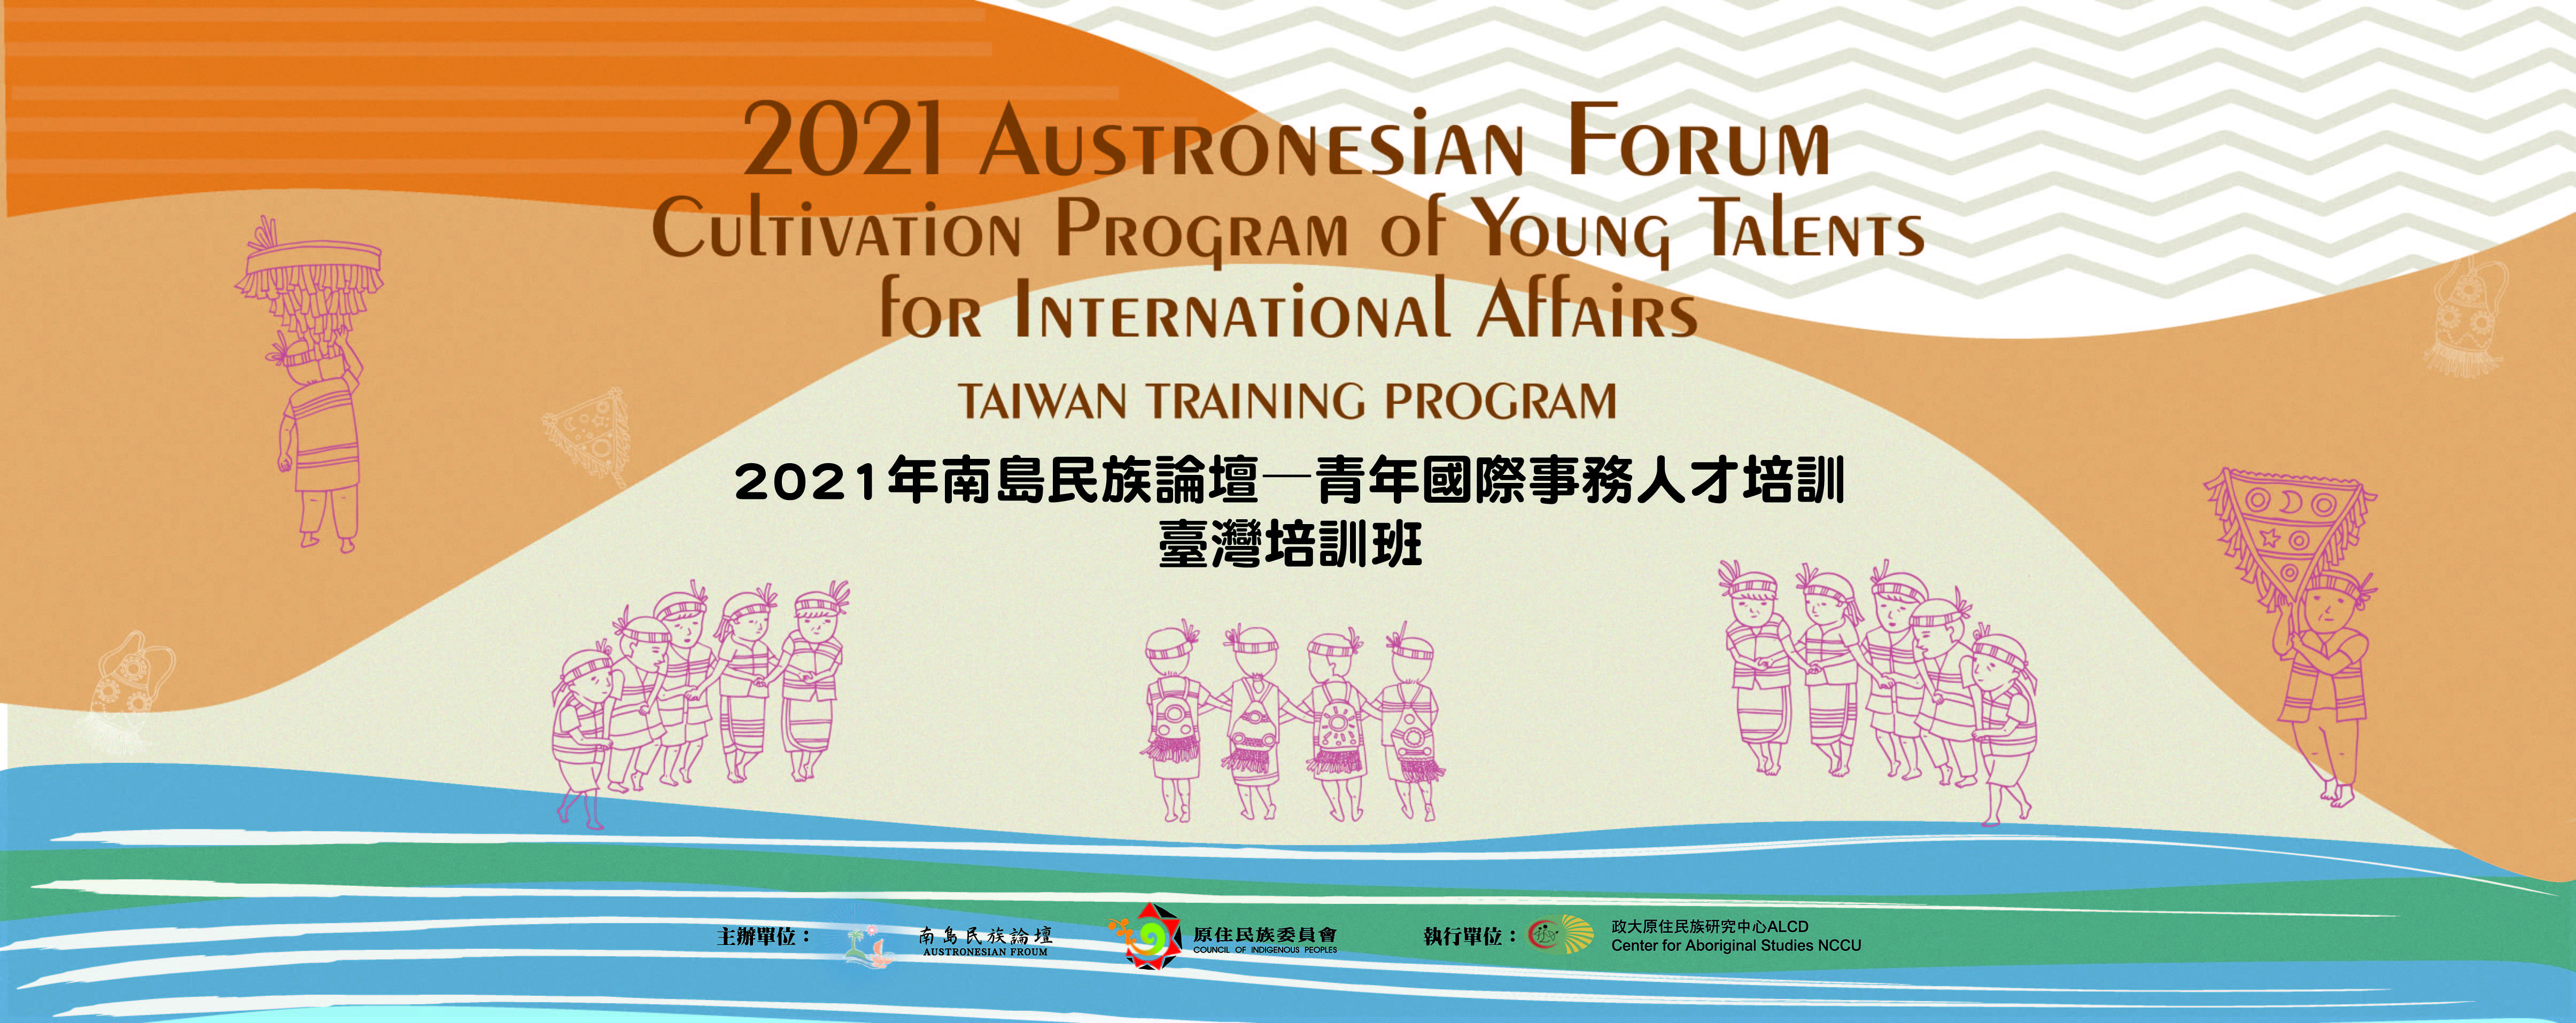 Cultivation Program of Young Talents for International Affairs - Taiwan Training Program